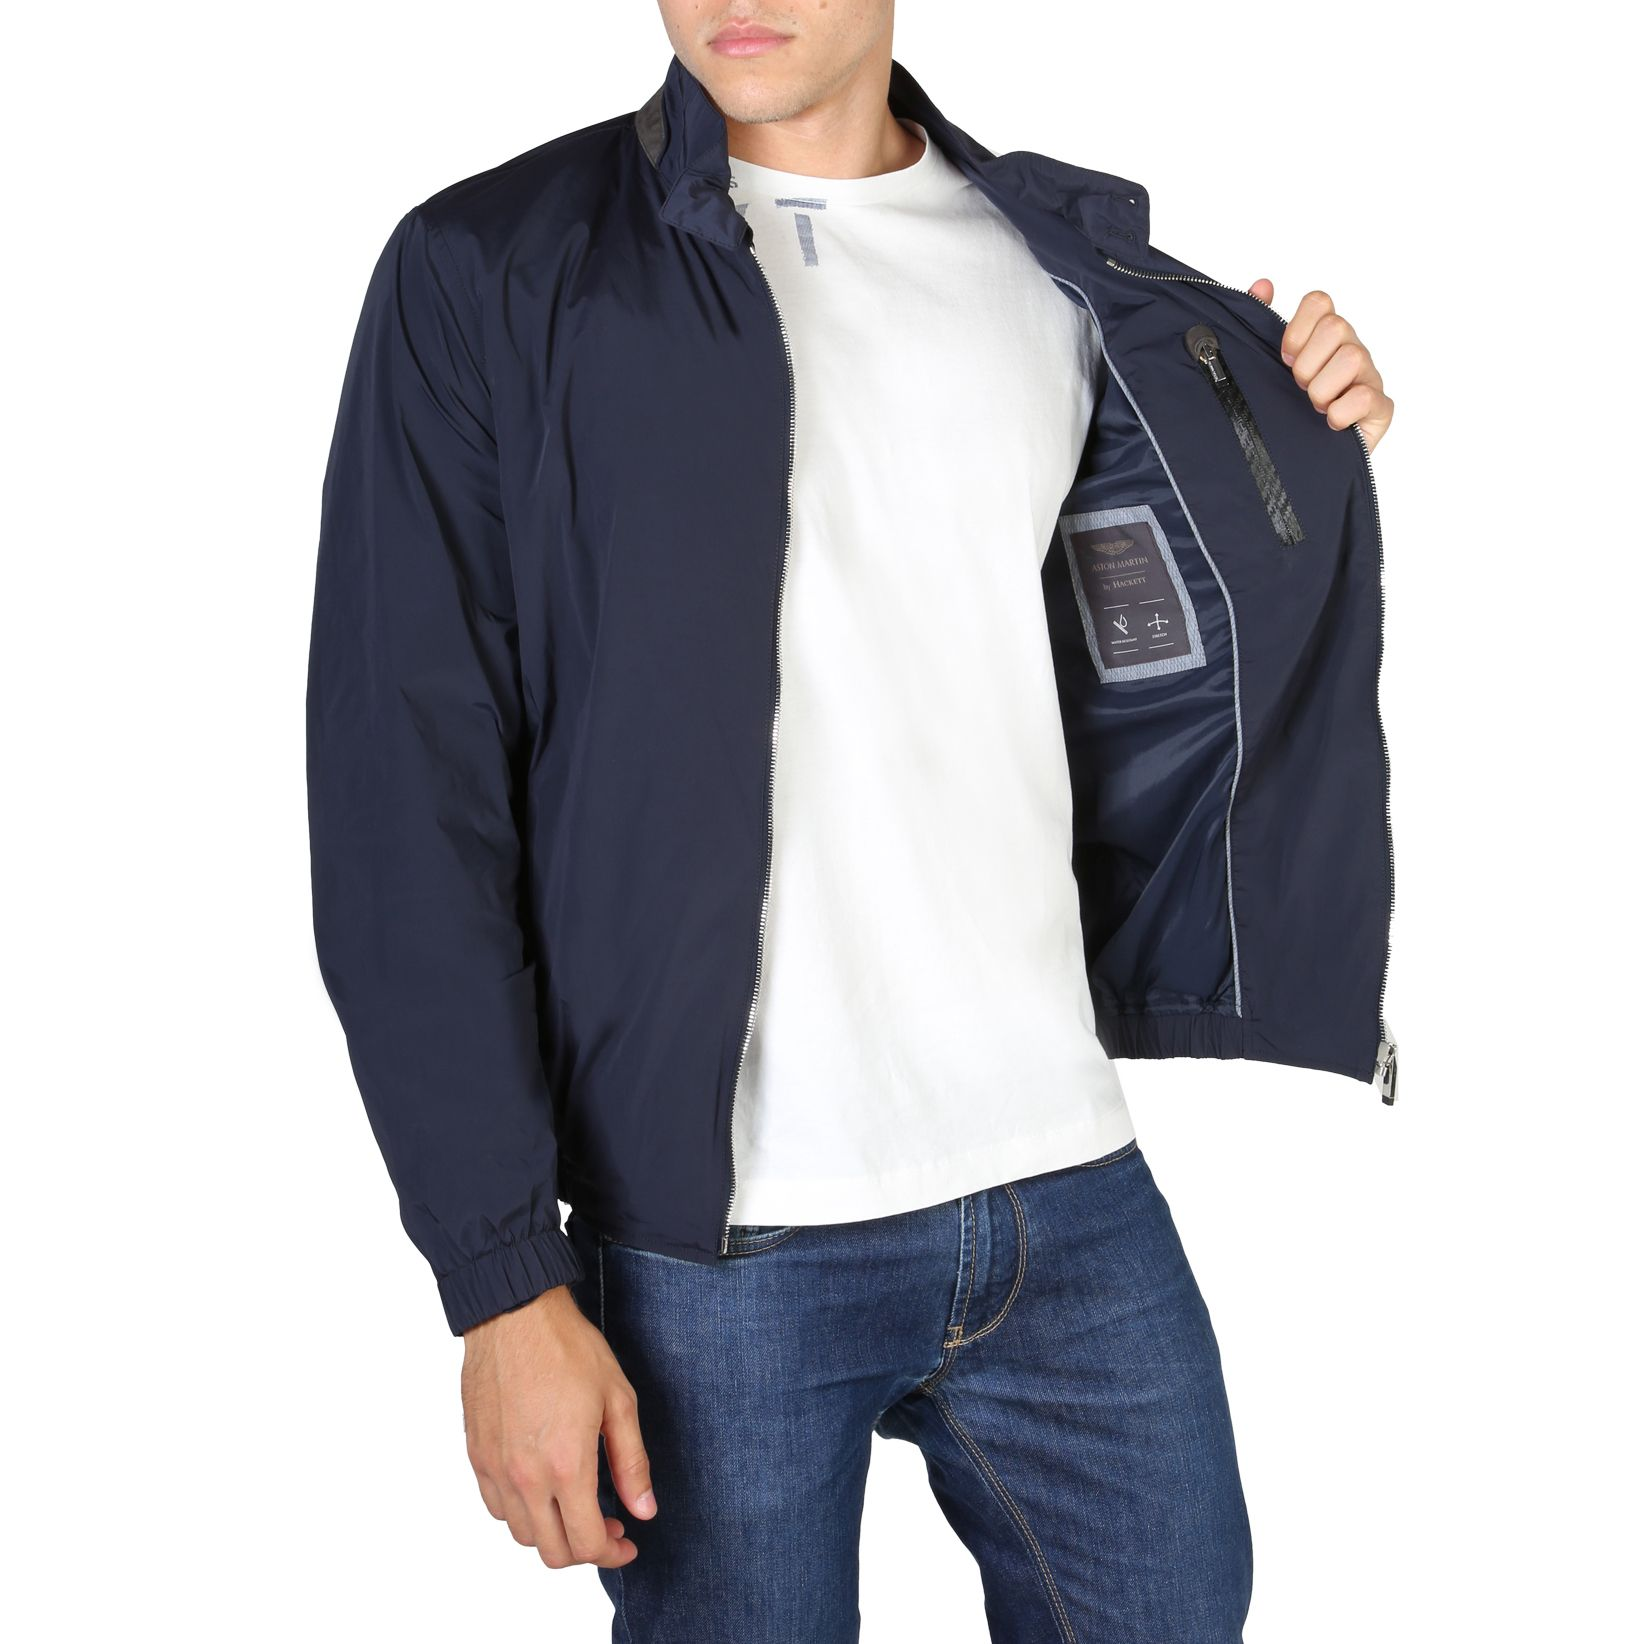 Hackett - HM402259 | You Fashion Outlet